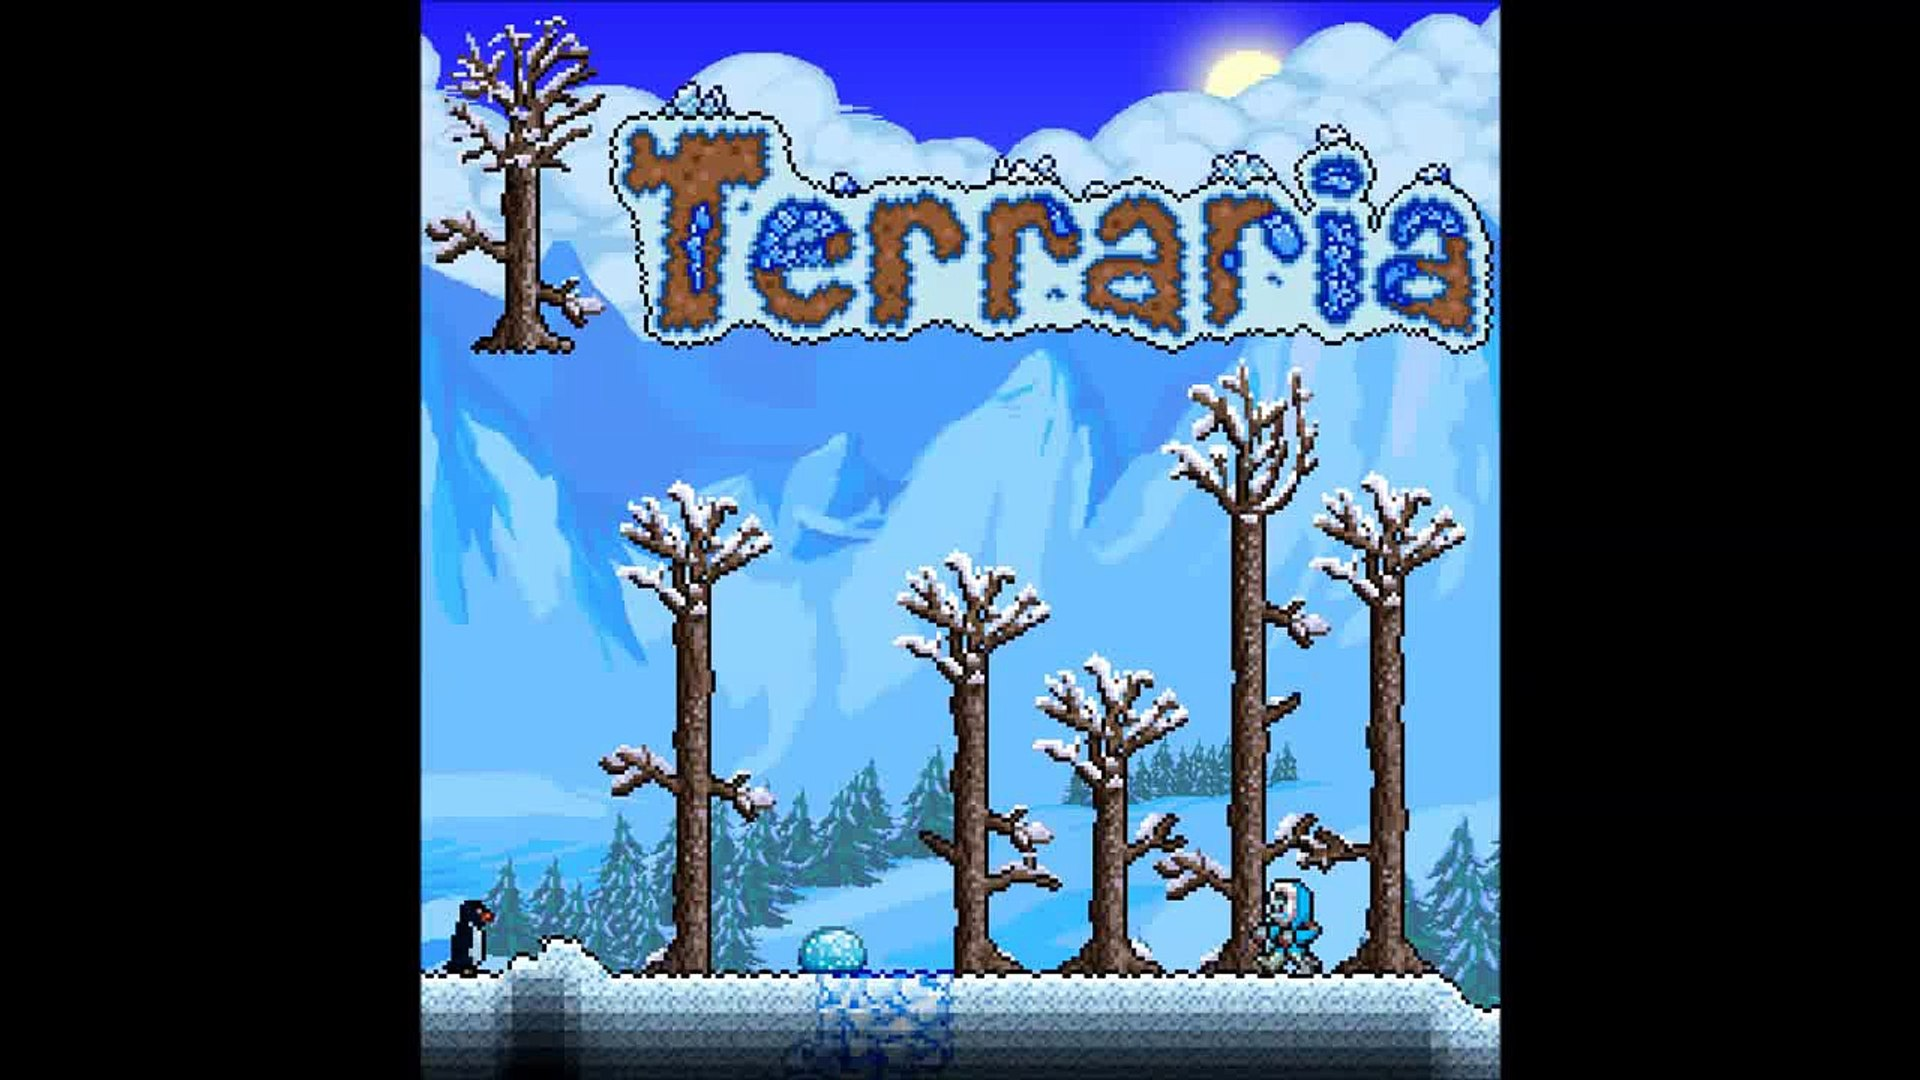 Terraria 1 2 Music Golem And Lunatic Cultist Boss 4 Video Dailymotion Solar eclipse 2 revenge for more loot terraria 1 4 summoner class playthrough 26. terraria 1 2 music golem and lunatic cultist boss 4